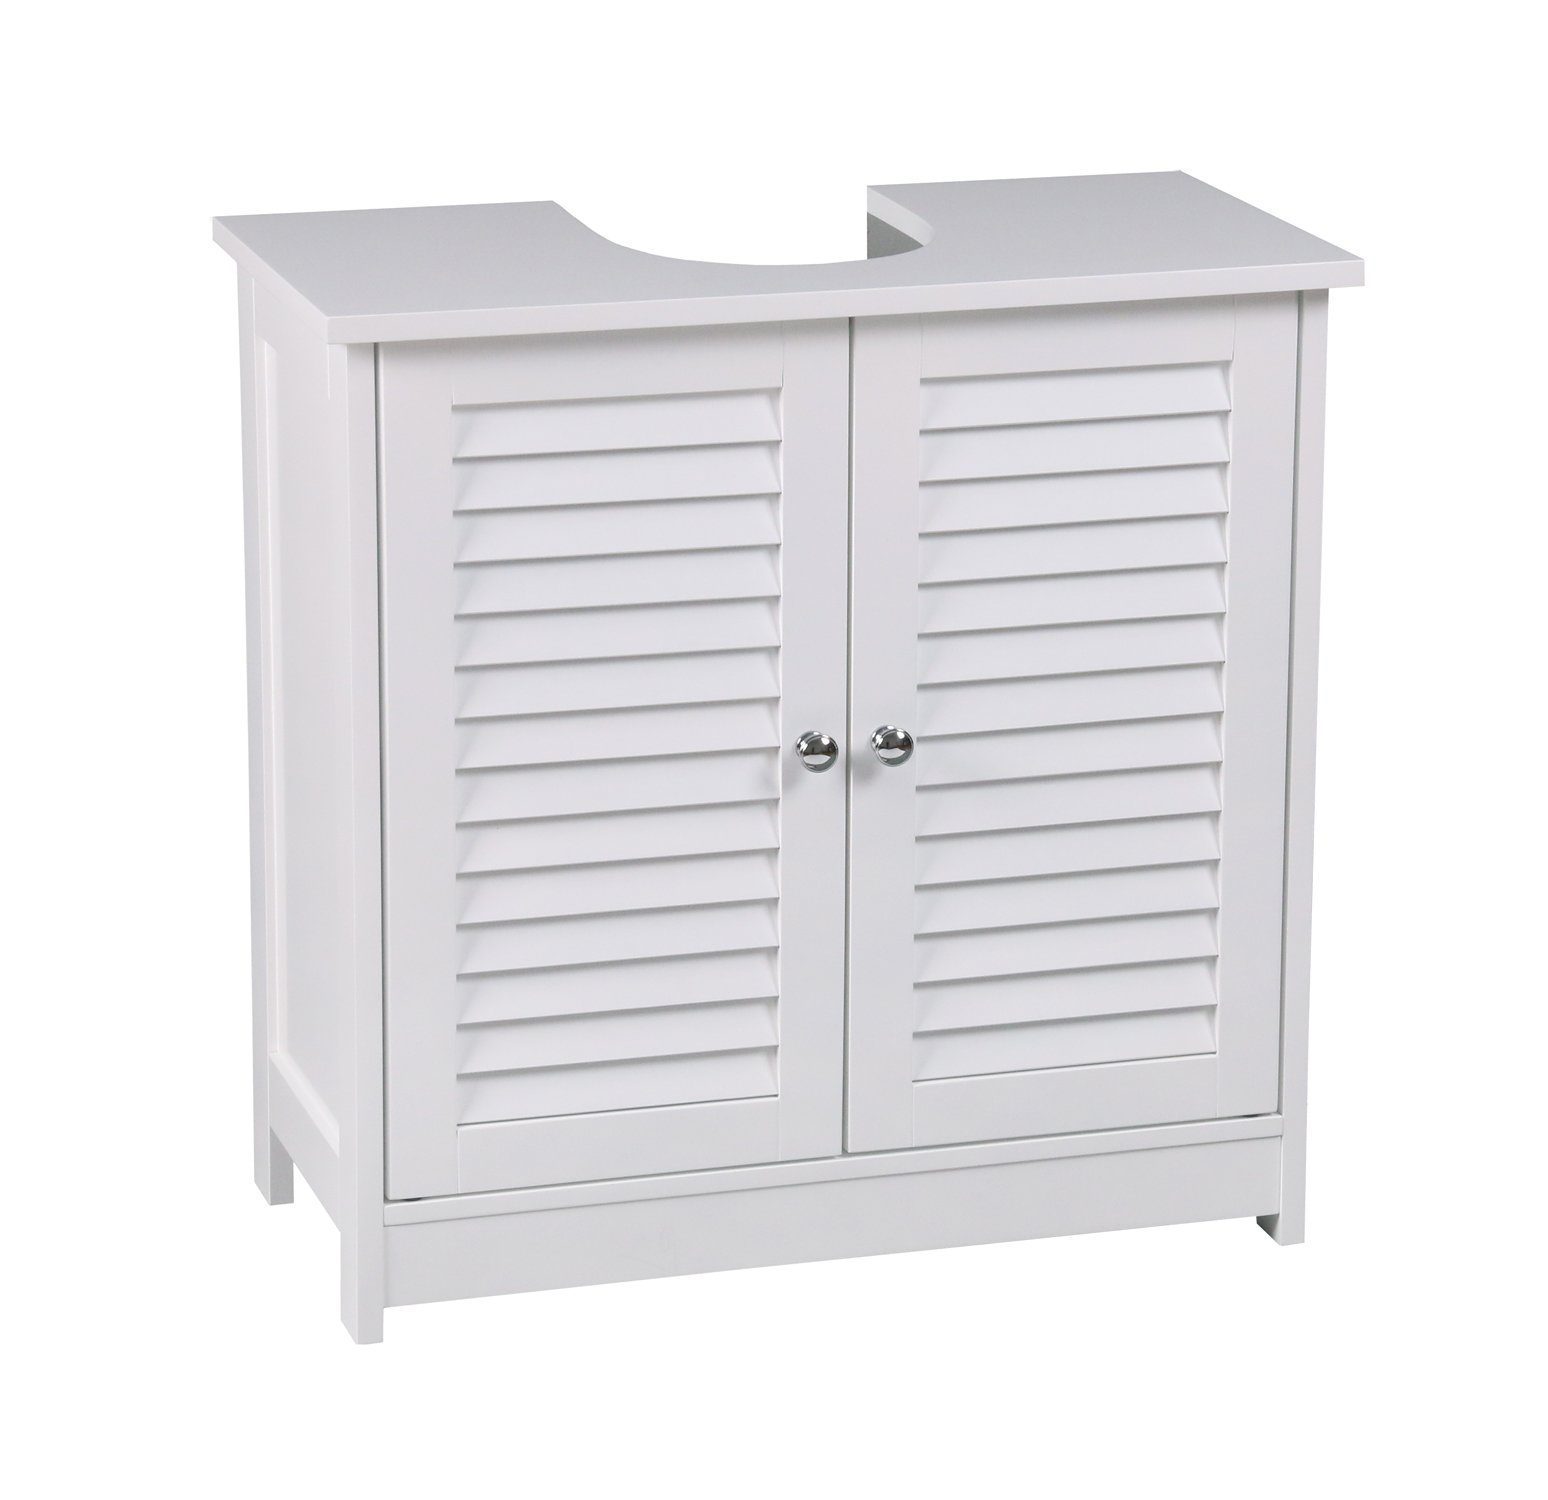 aspect oslo bathroom storage under sink cabinet white 60